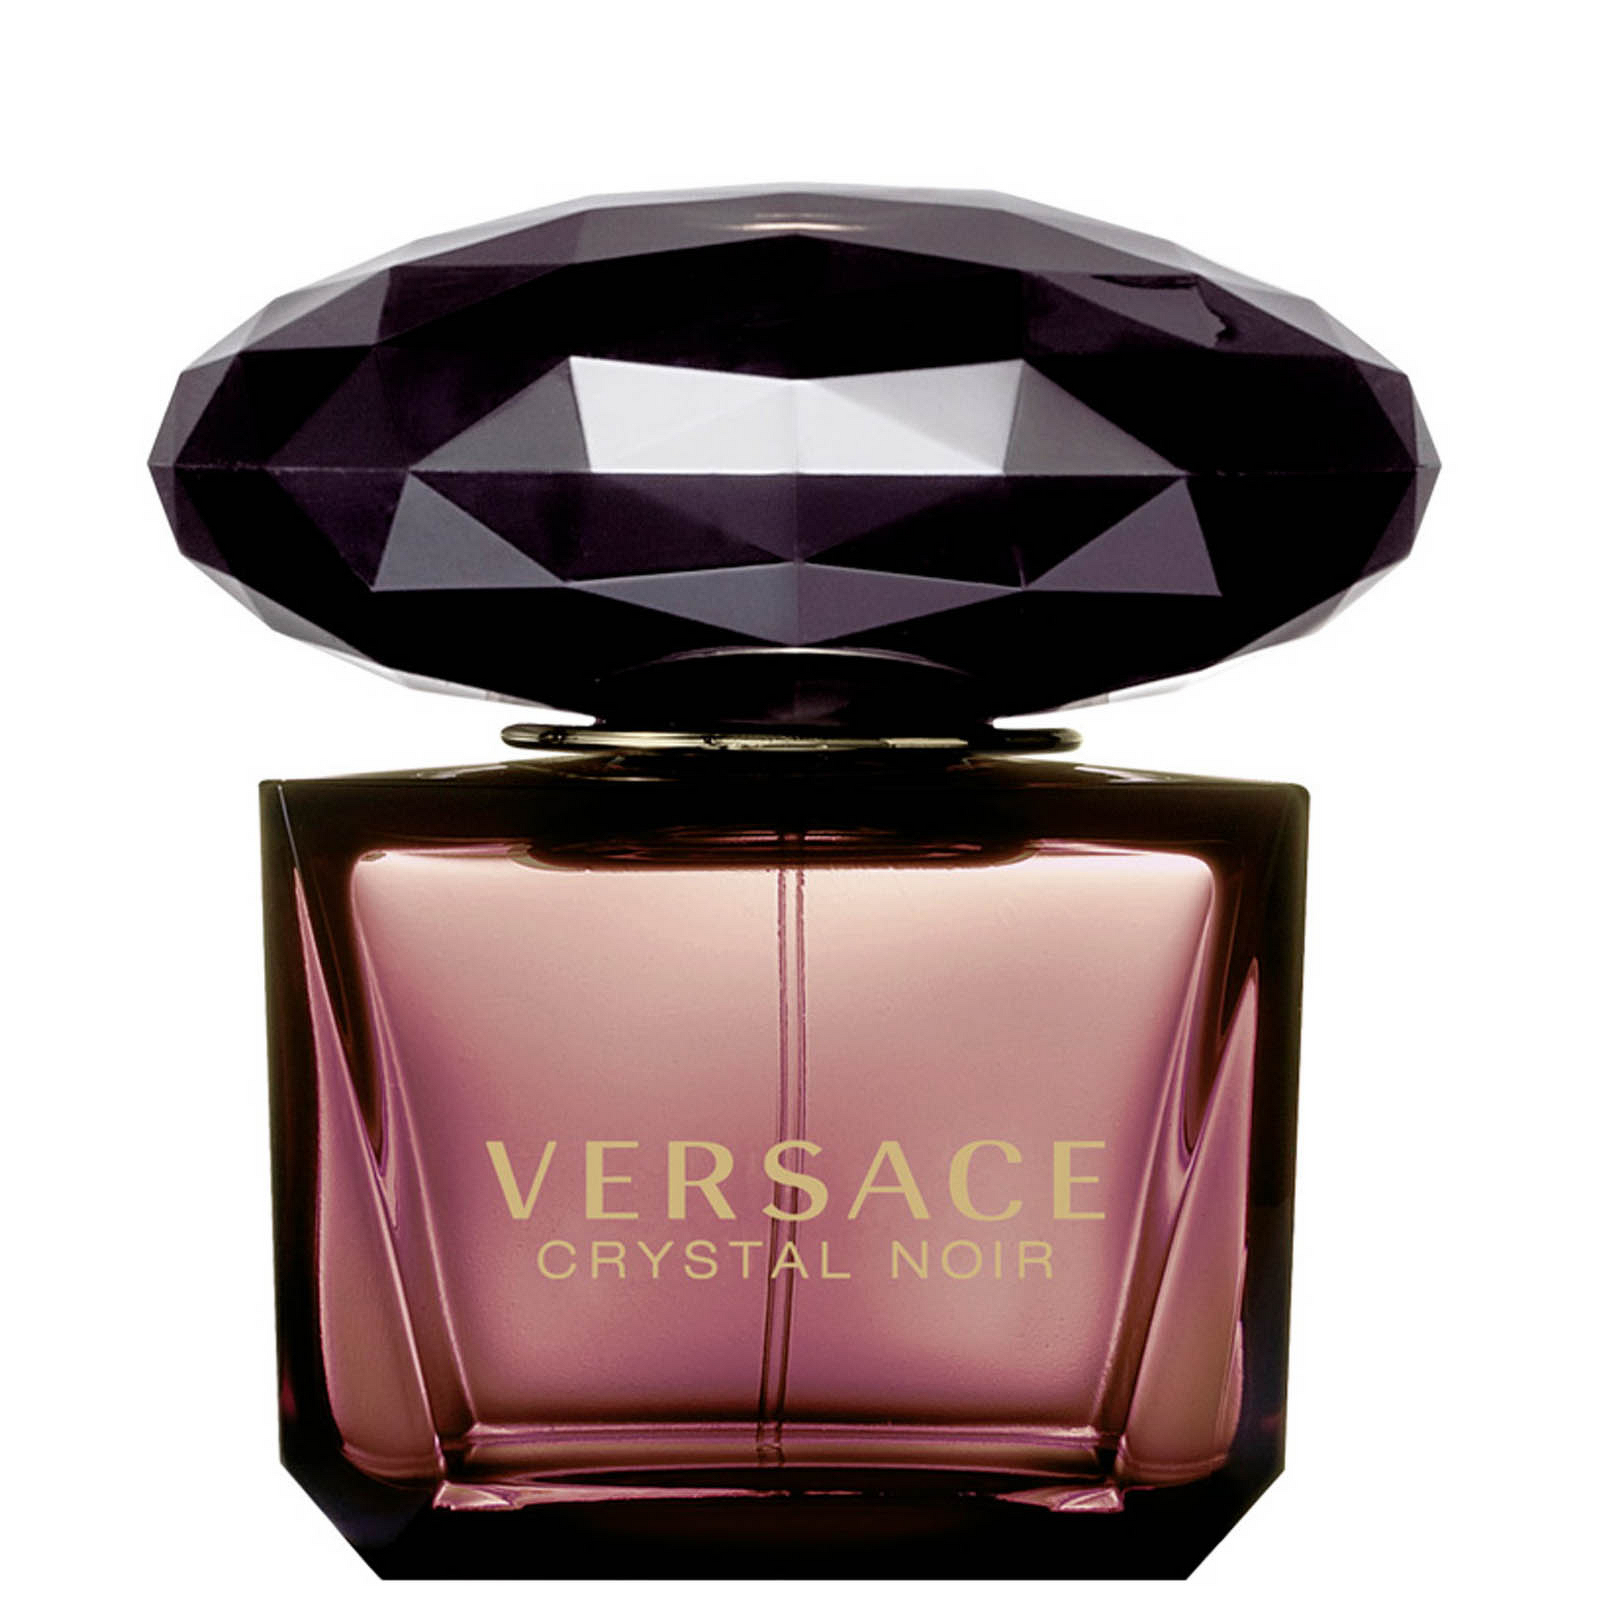 Versace Crystal Noir Eau de Toilette Spray 50ml